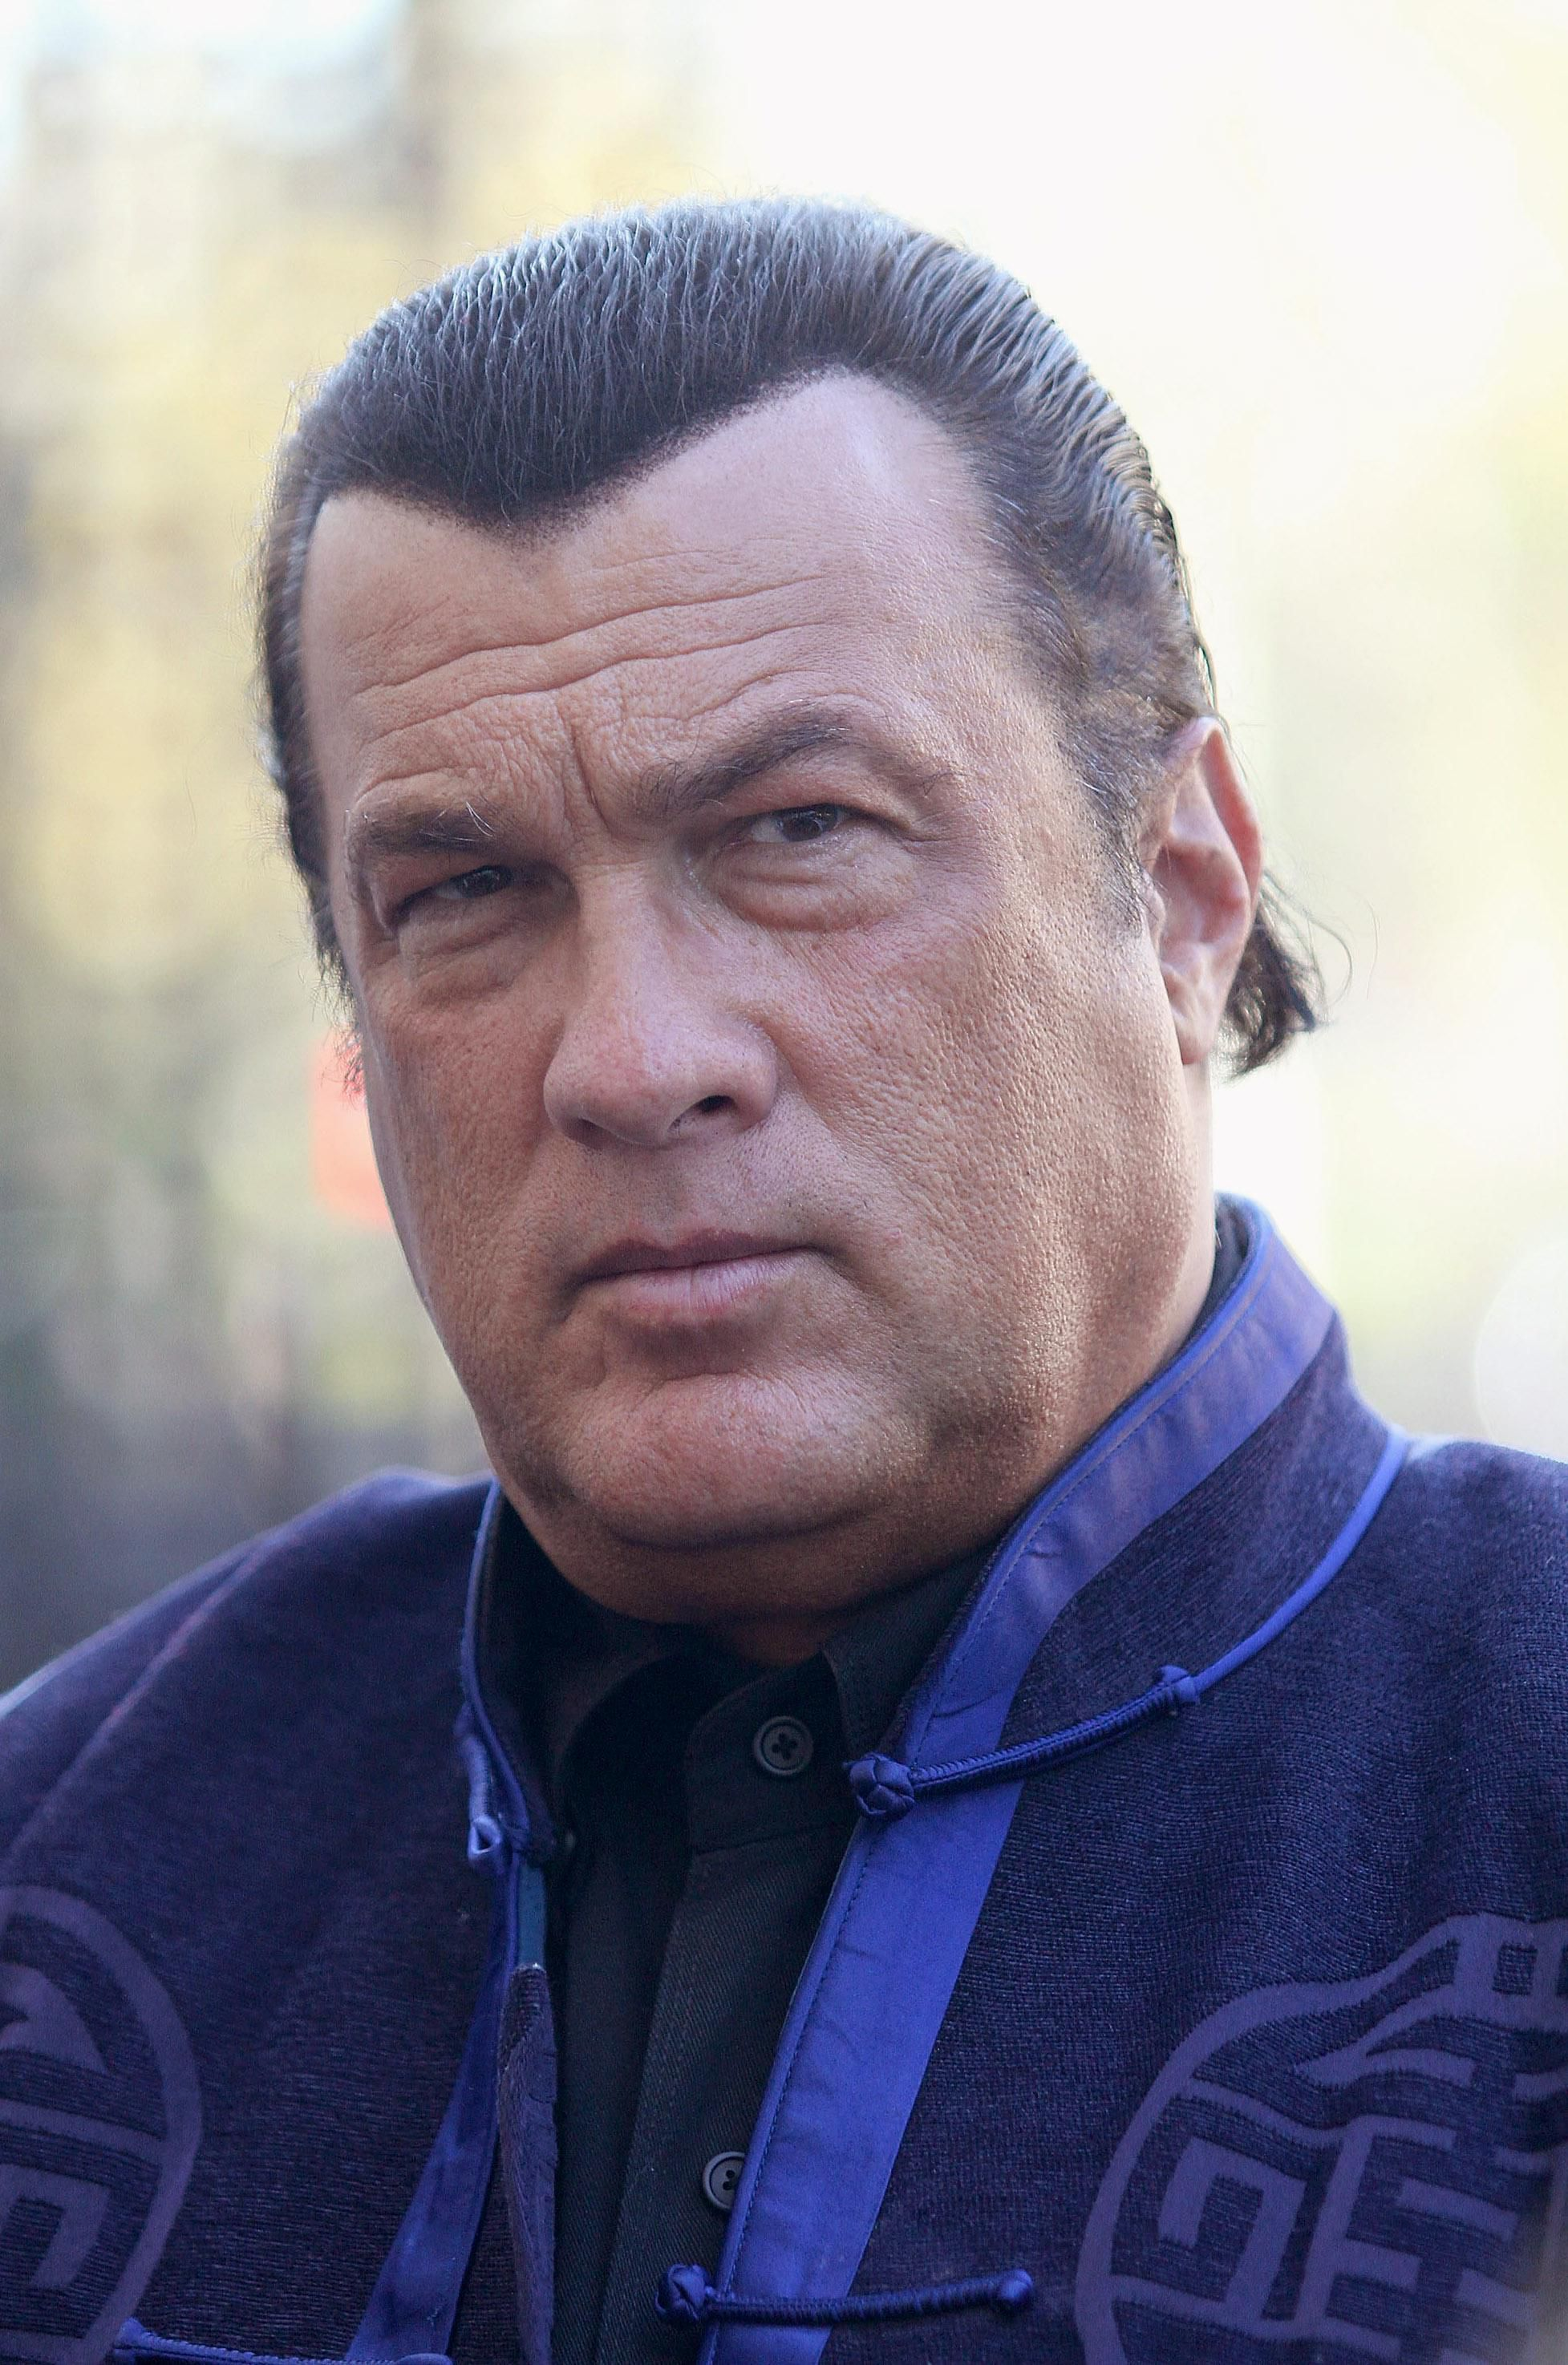 Steven Seagal Martial Artist And Hollywood Star